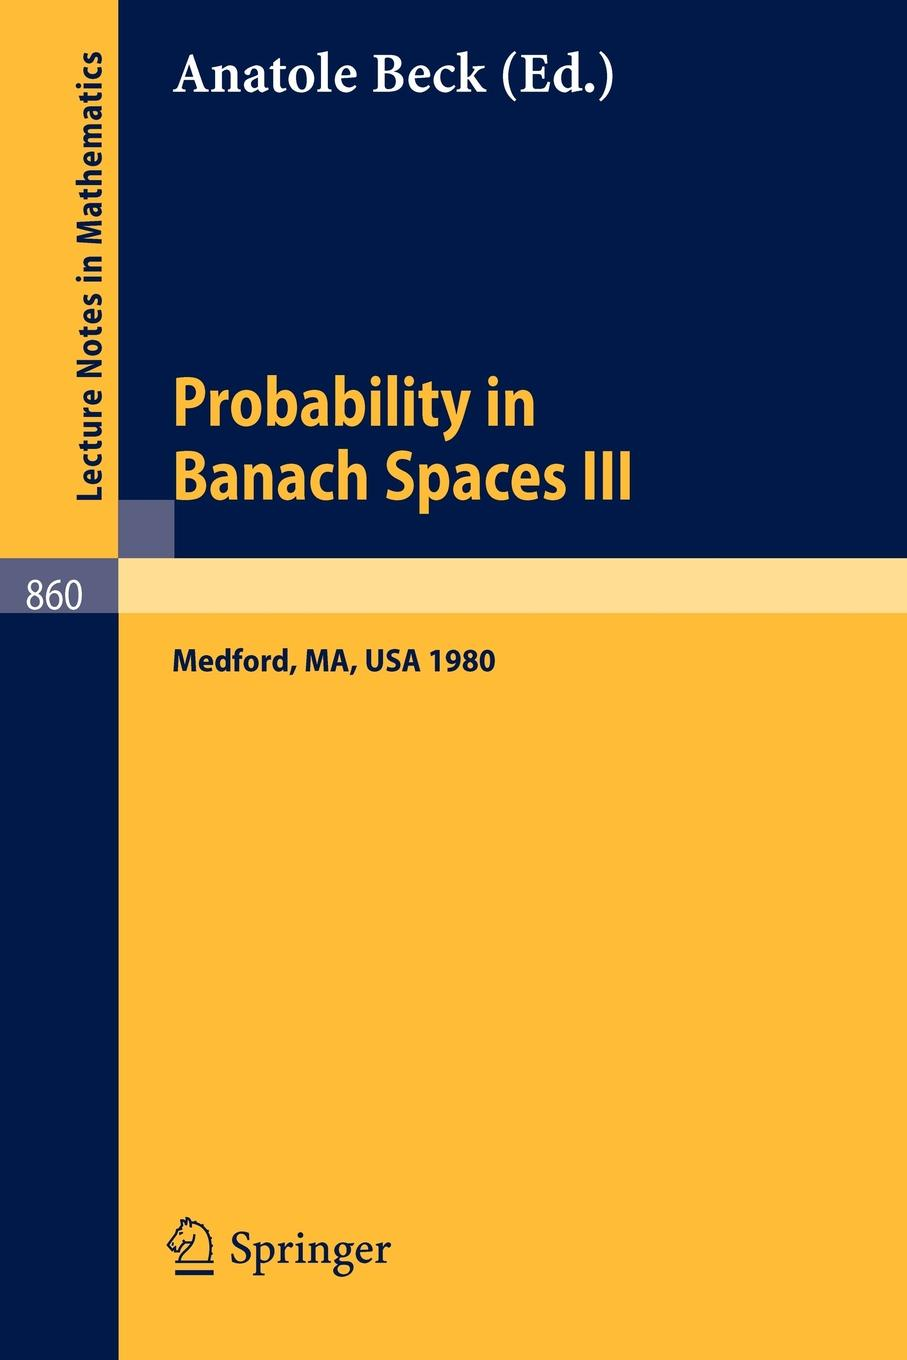 Probability in Banach Spaces III. Proceedings of the Third International Conference on Probability in Banach Spaces, Held at Tufts University, Medford, USA, August 4-16, 1980 цены